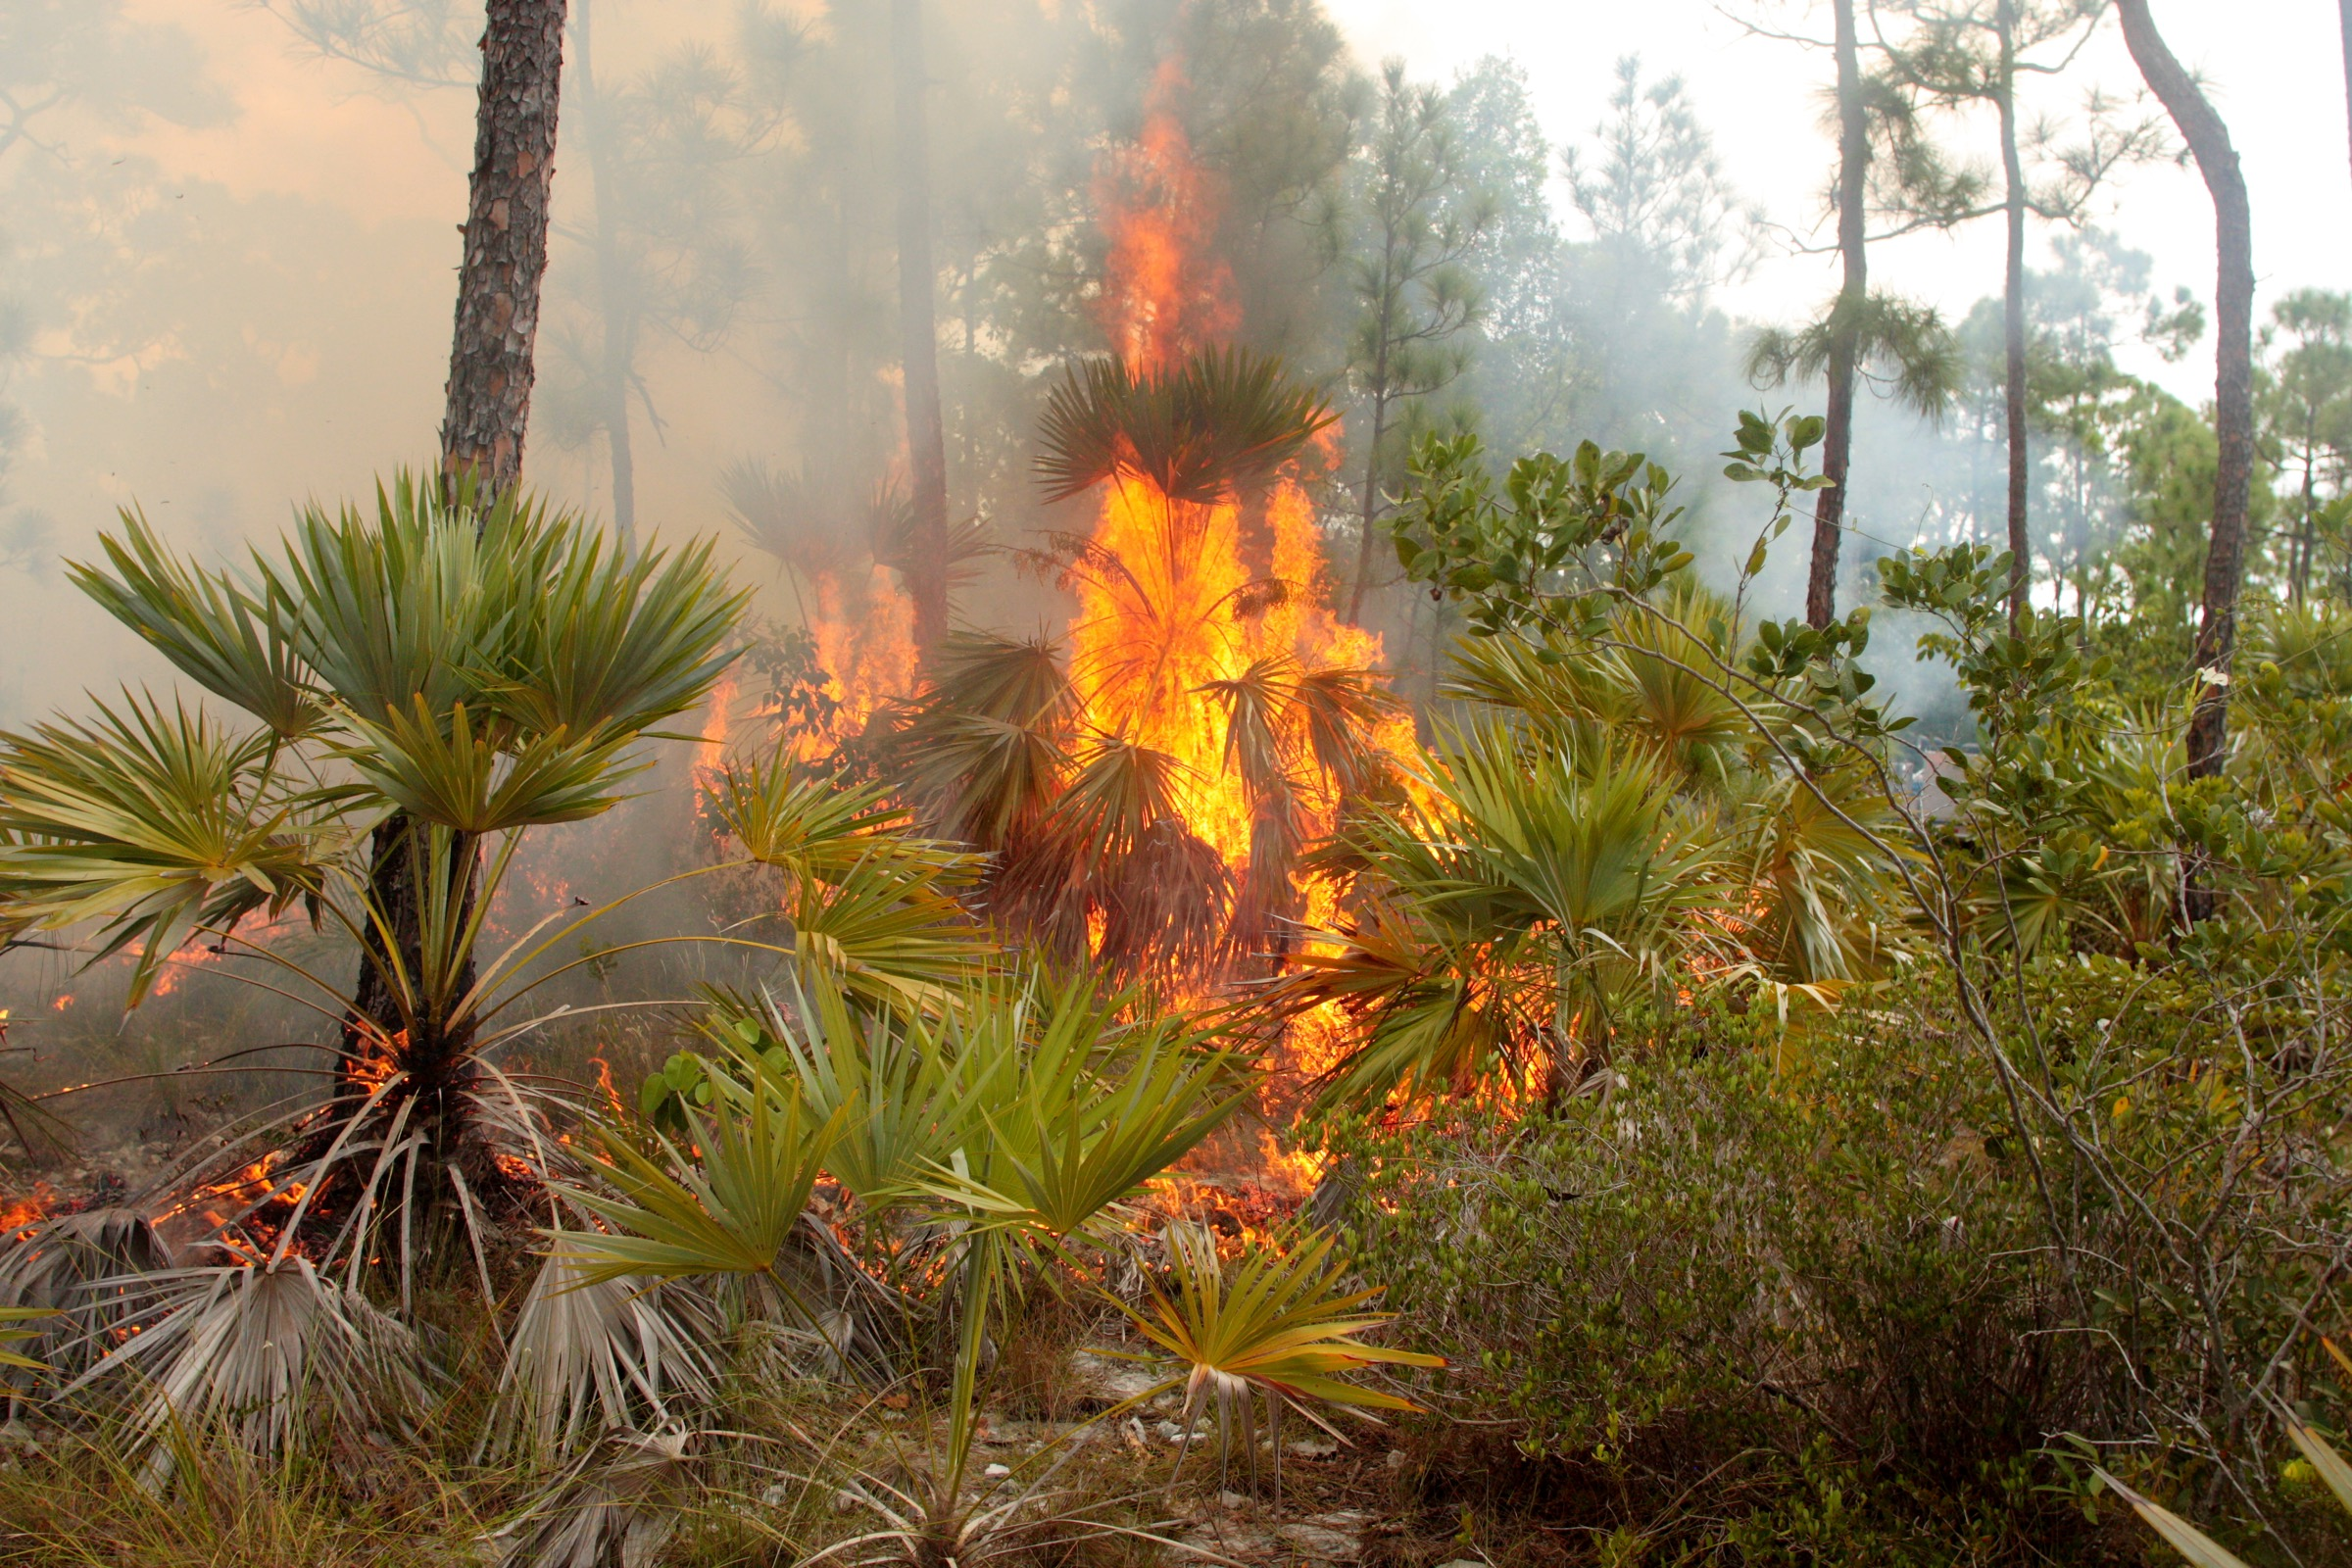 Land managers now use prescribed burns like this one as a way of bringing the pine rockland ecosystem back into balance. Photograph by Chad Anderson